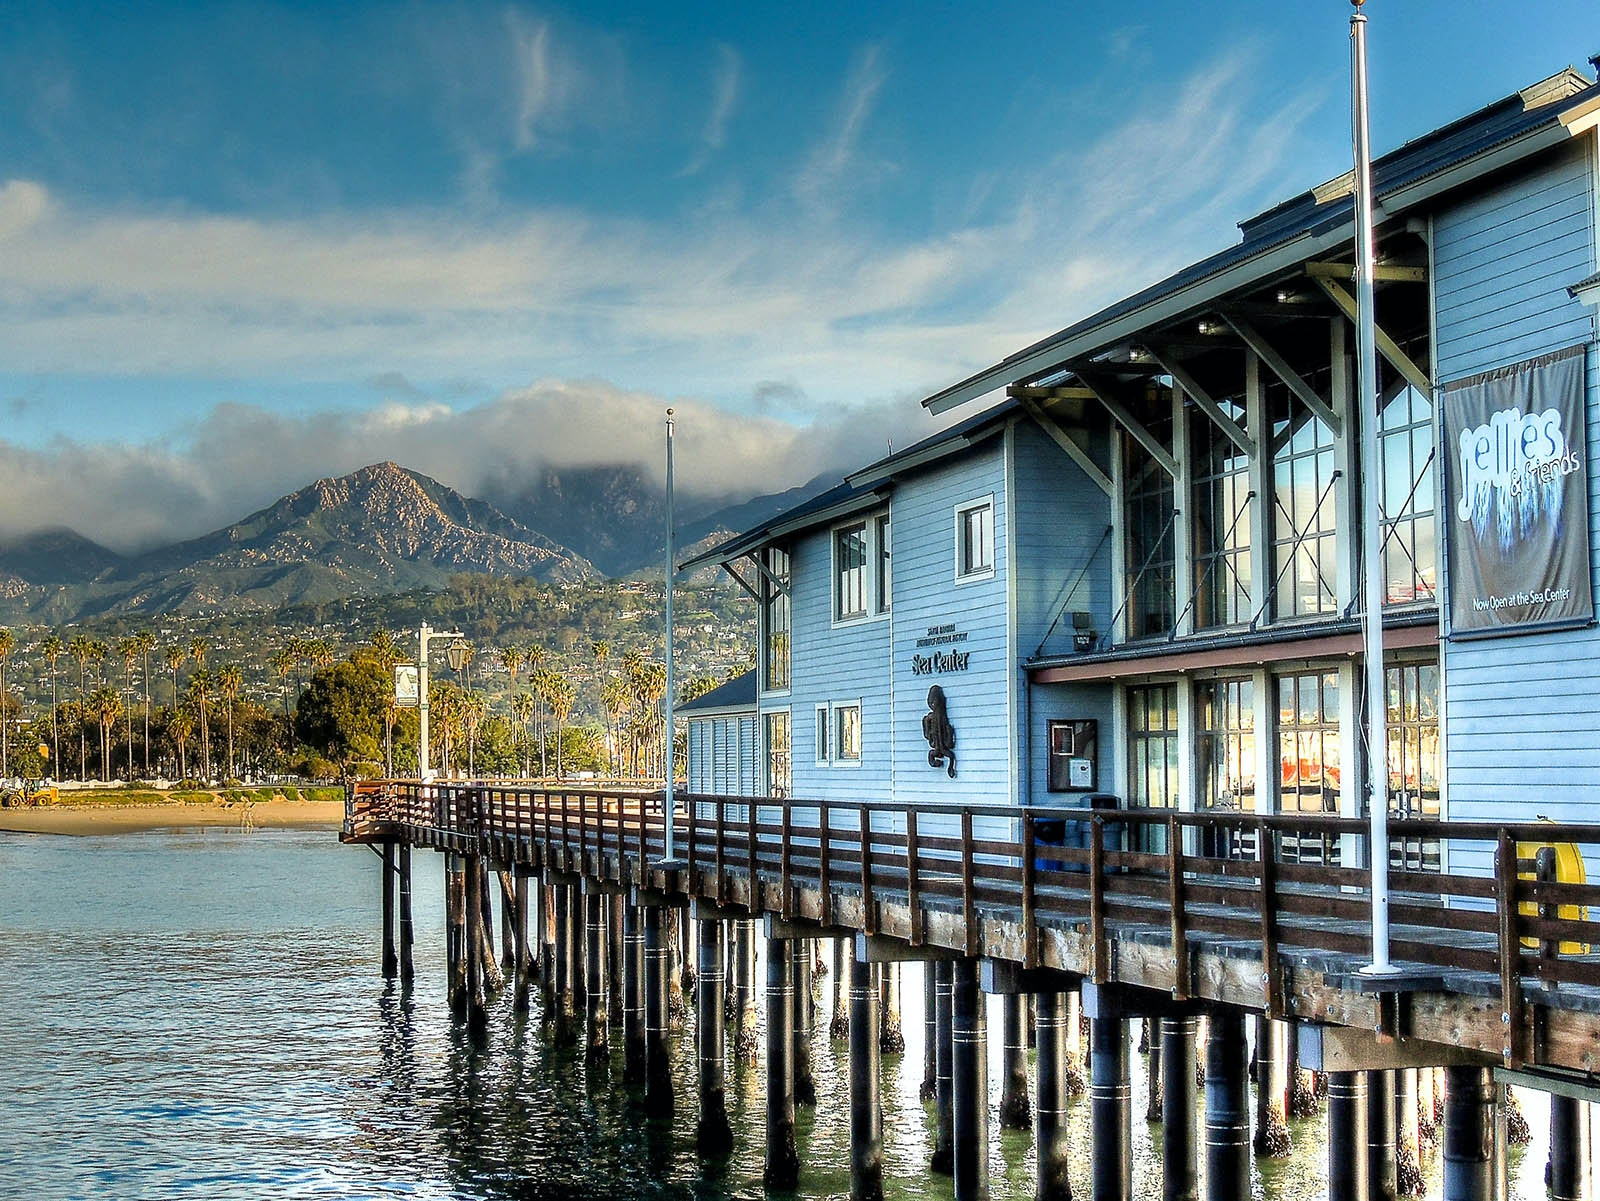 Find out what's just beyond those beautiful Santa Barbara beaches.